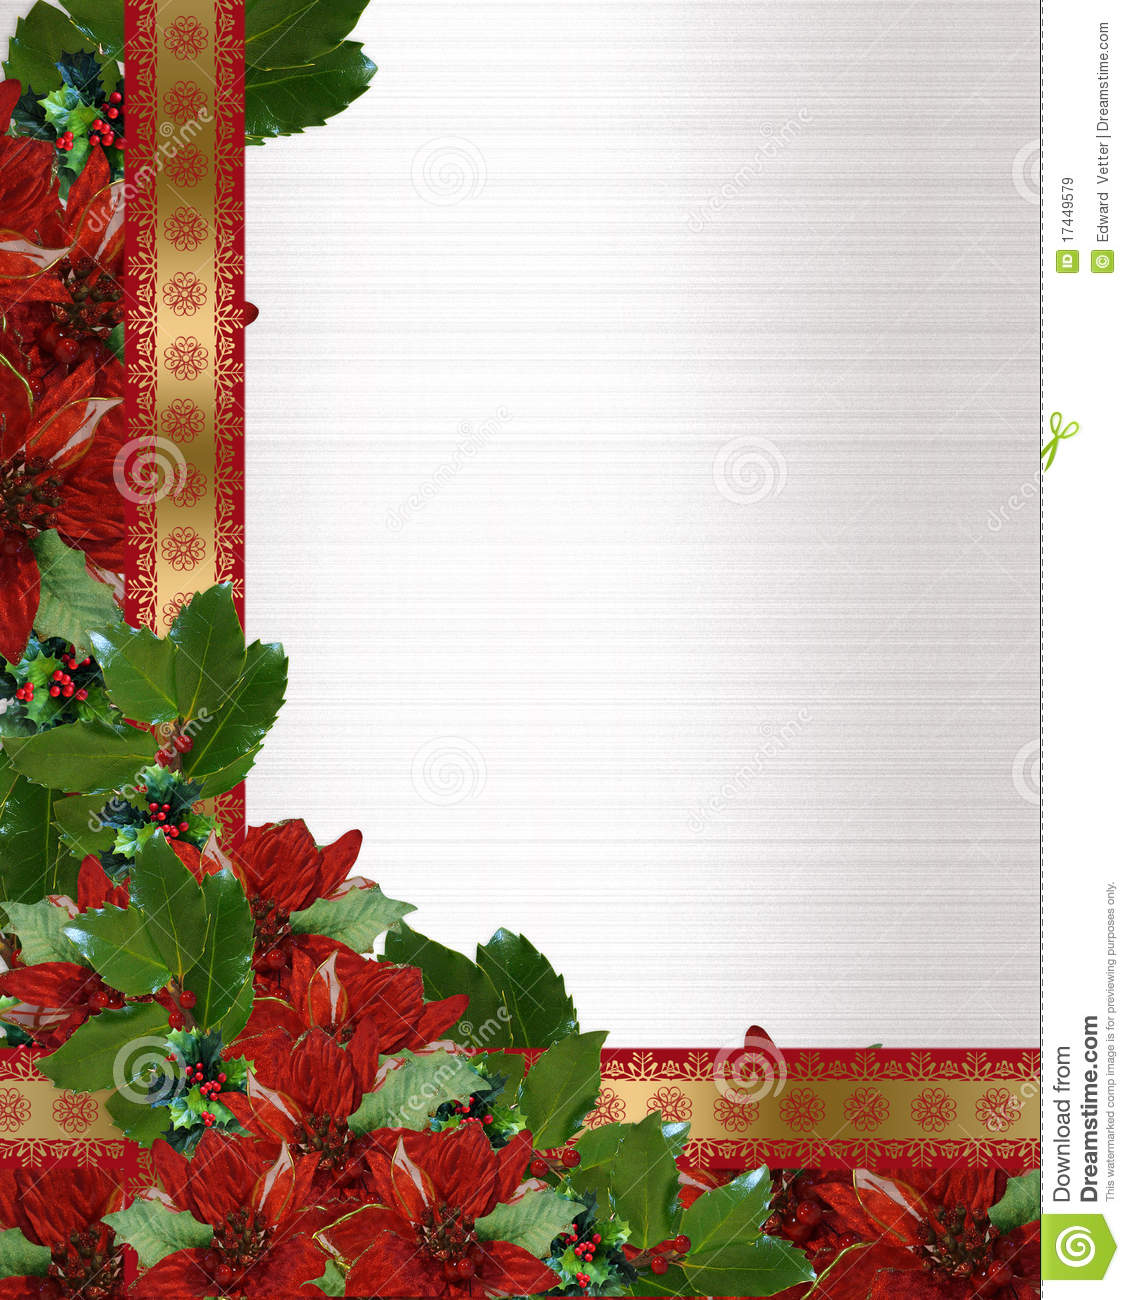 ... or frame with holly, poinsettia flowers, shiny ribbons and copy space